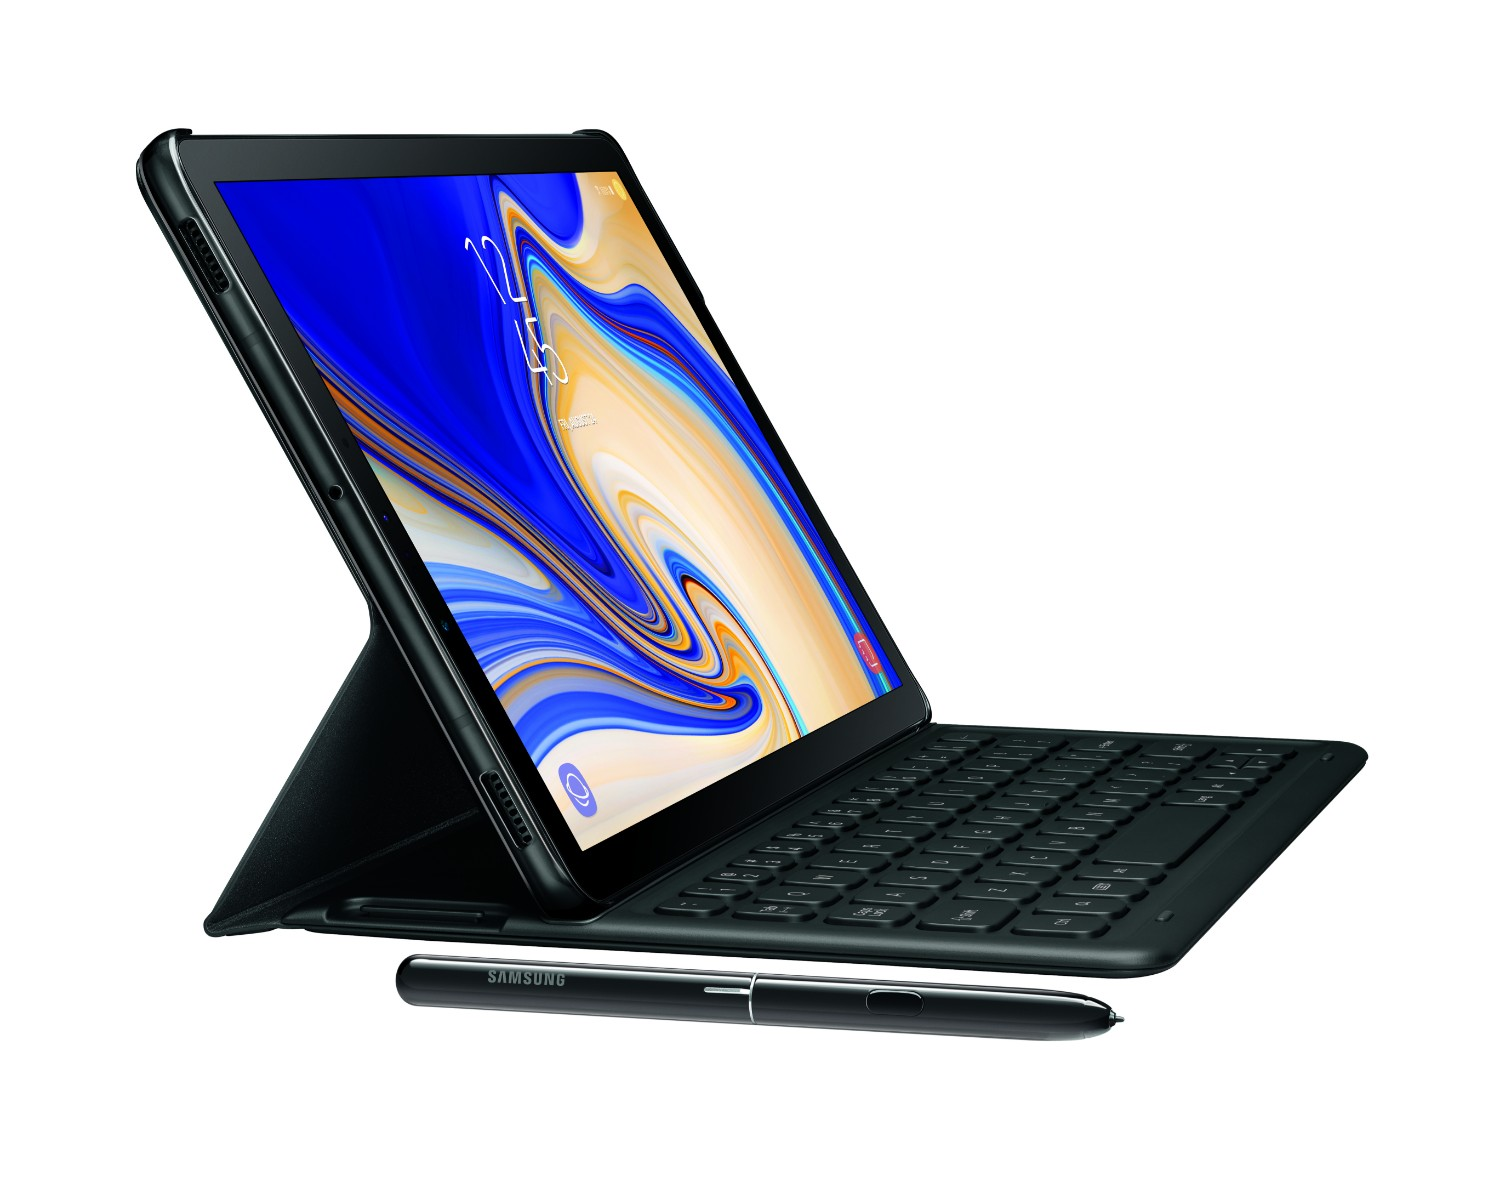 Samsung Galaxy Tab S4 breathes new life into high-end Android tablets